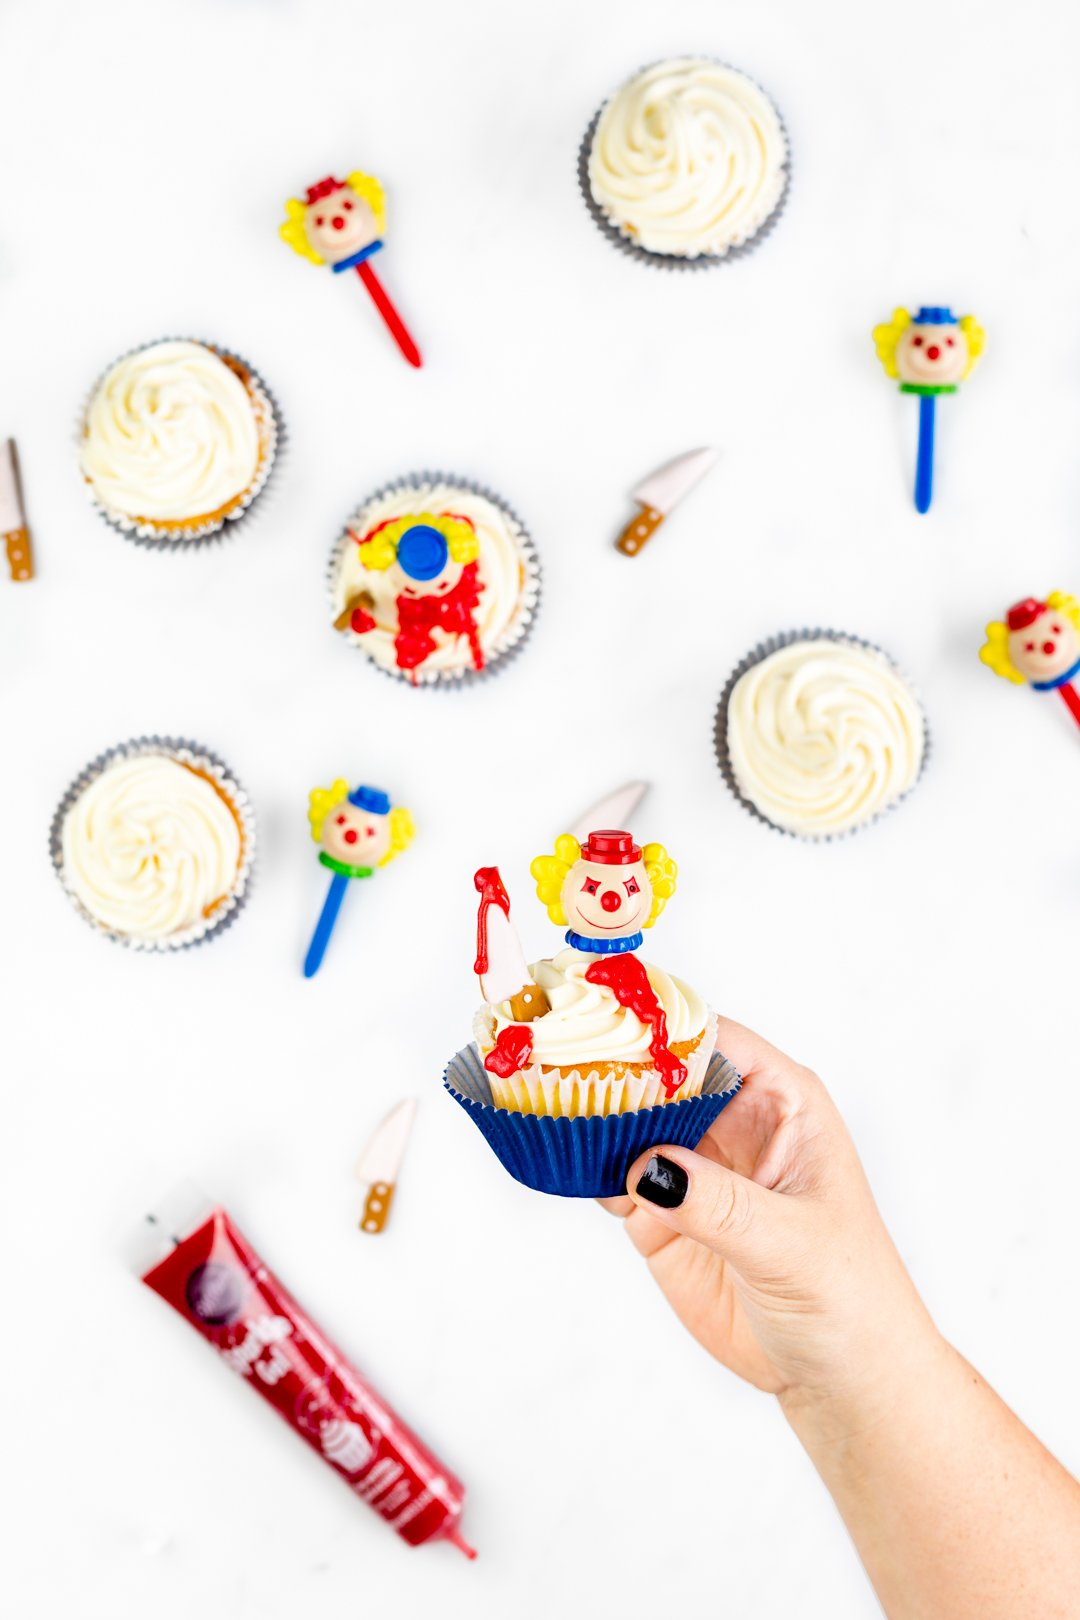 Killer Clown Cupcakes. Perfect for Halloween.